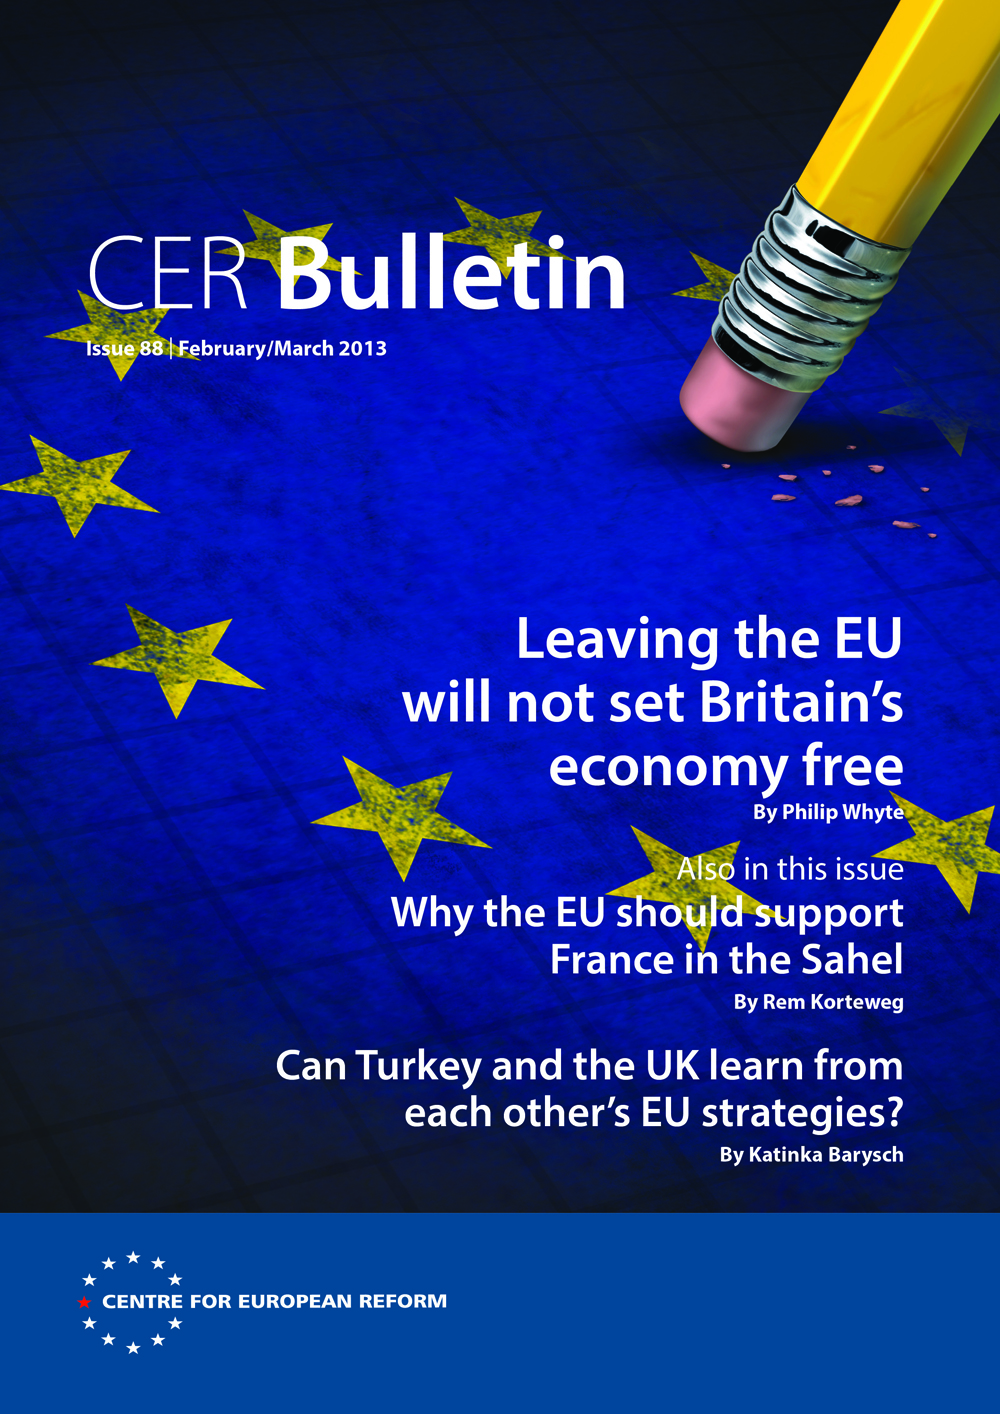 CER bulletin - issue 88